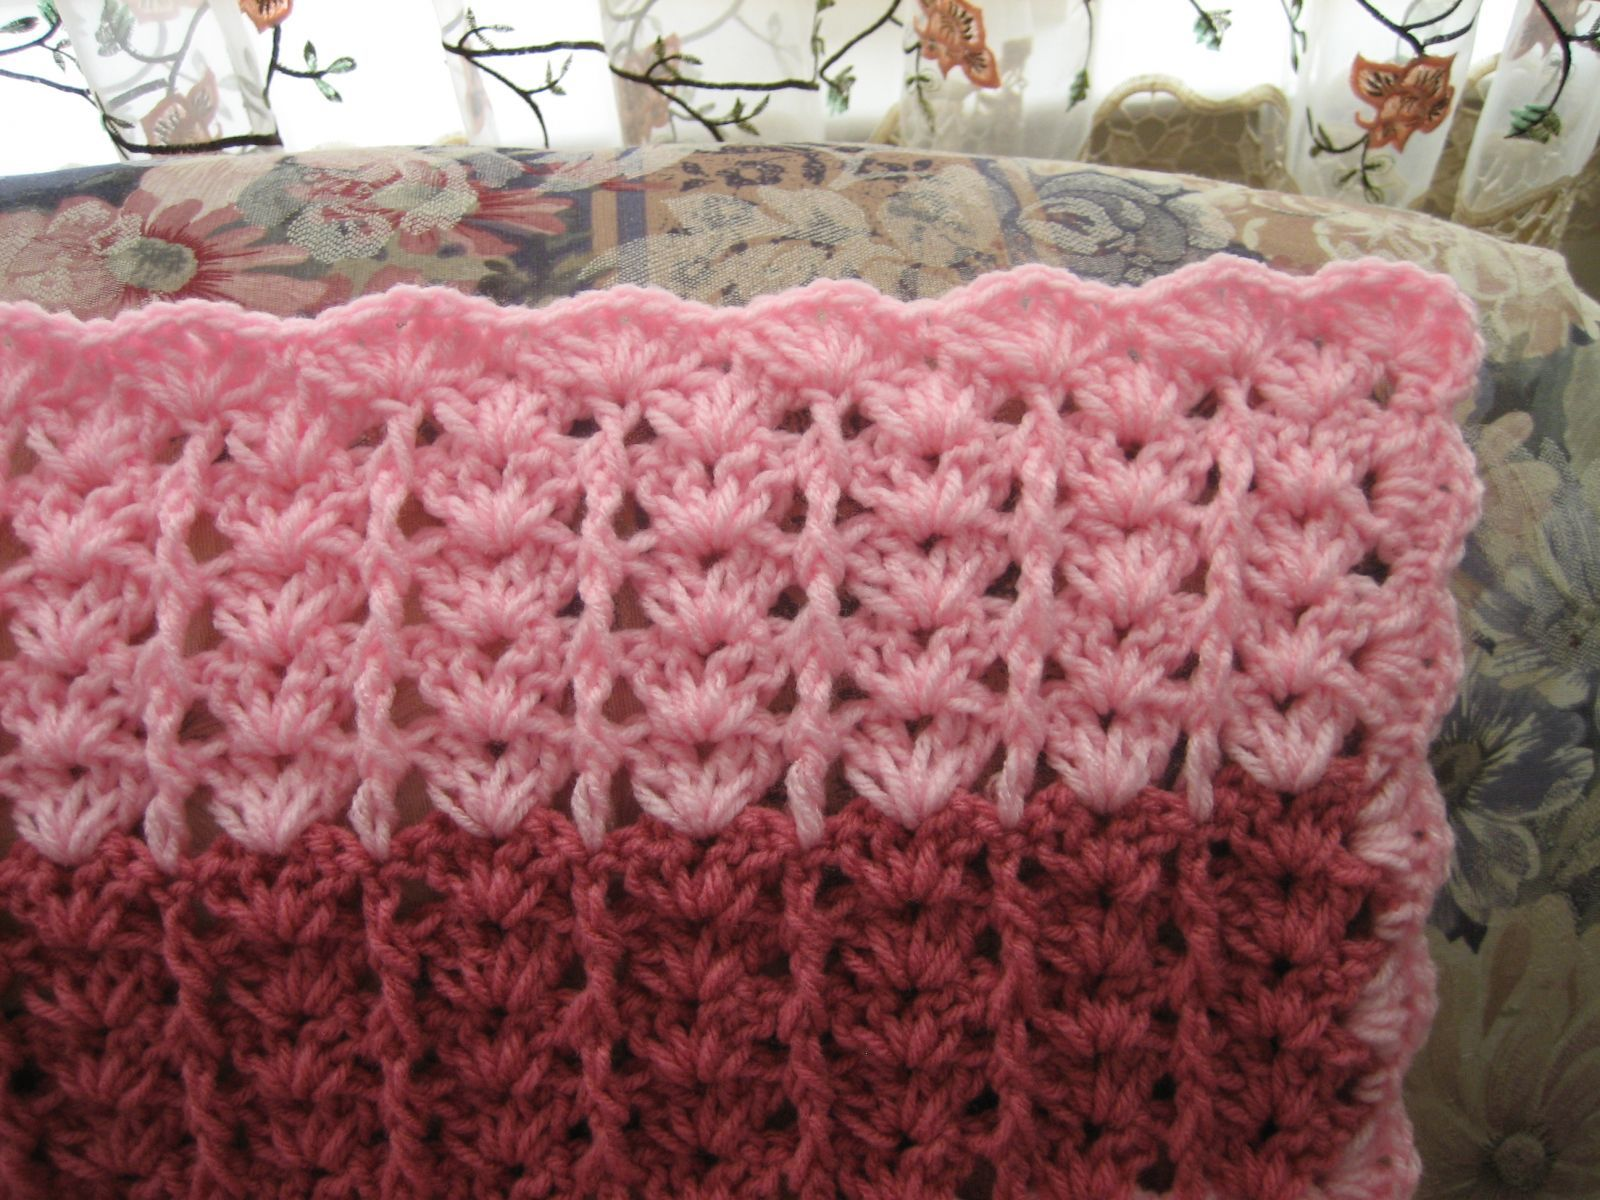 Lacy Shades of Pink Shells Afghan | crochet patterns | Pinterest ...